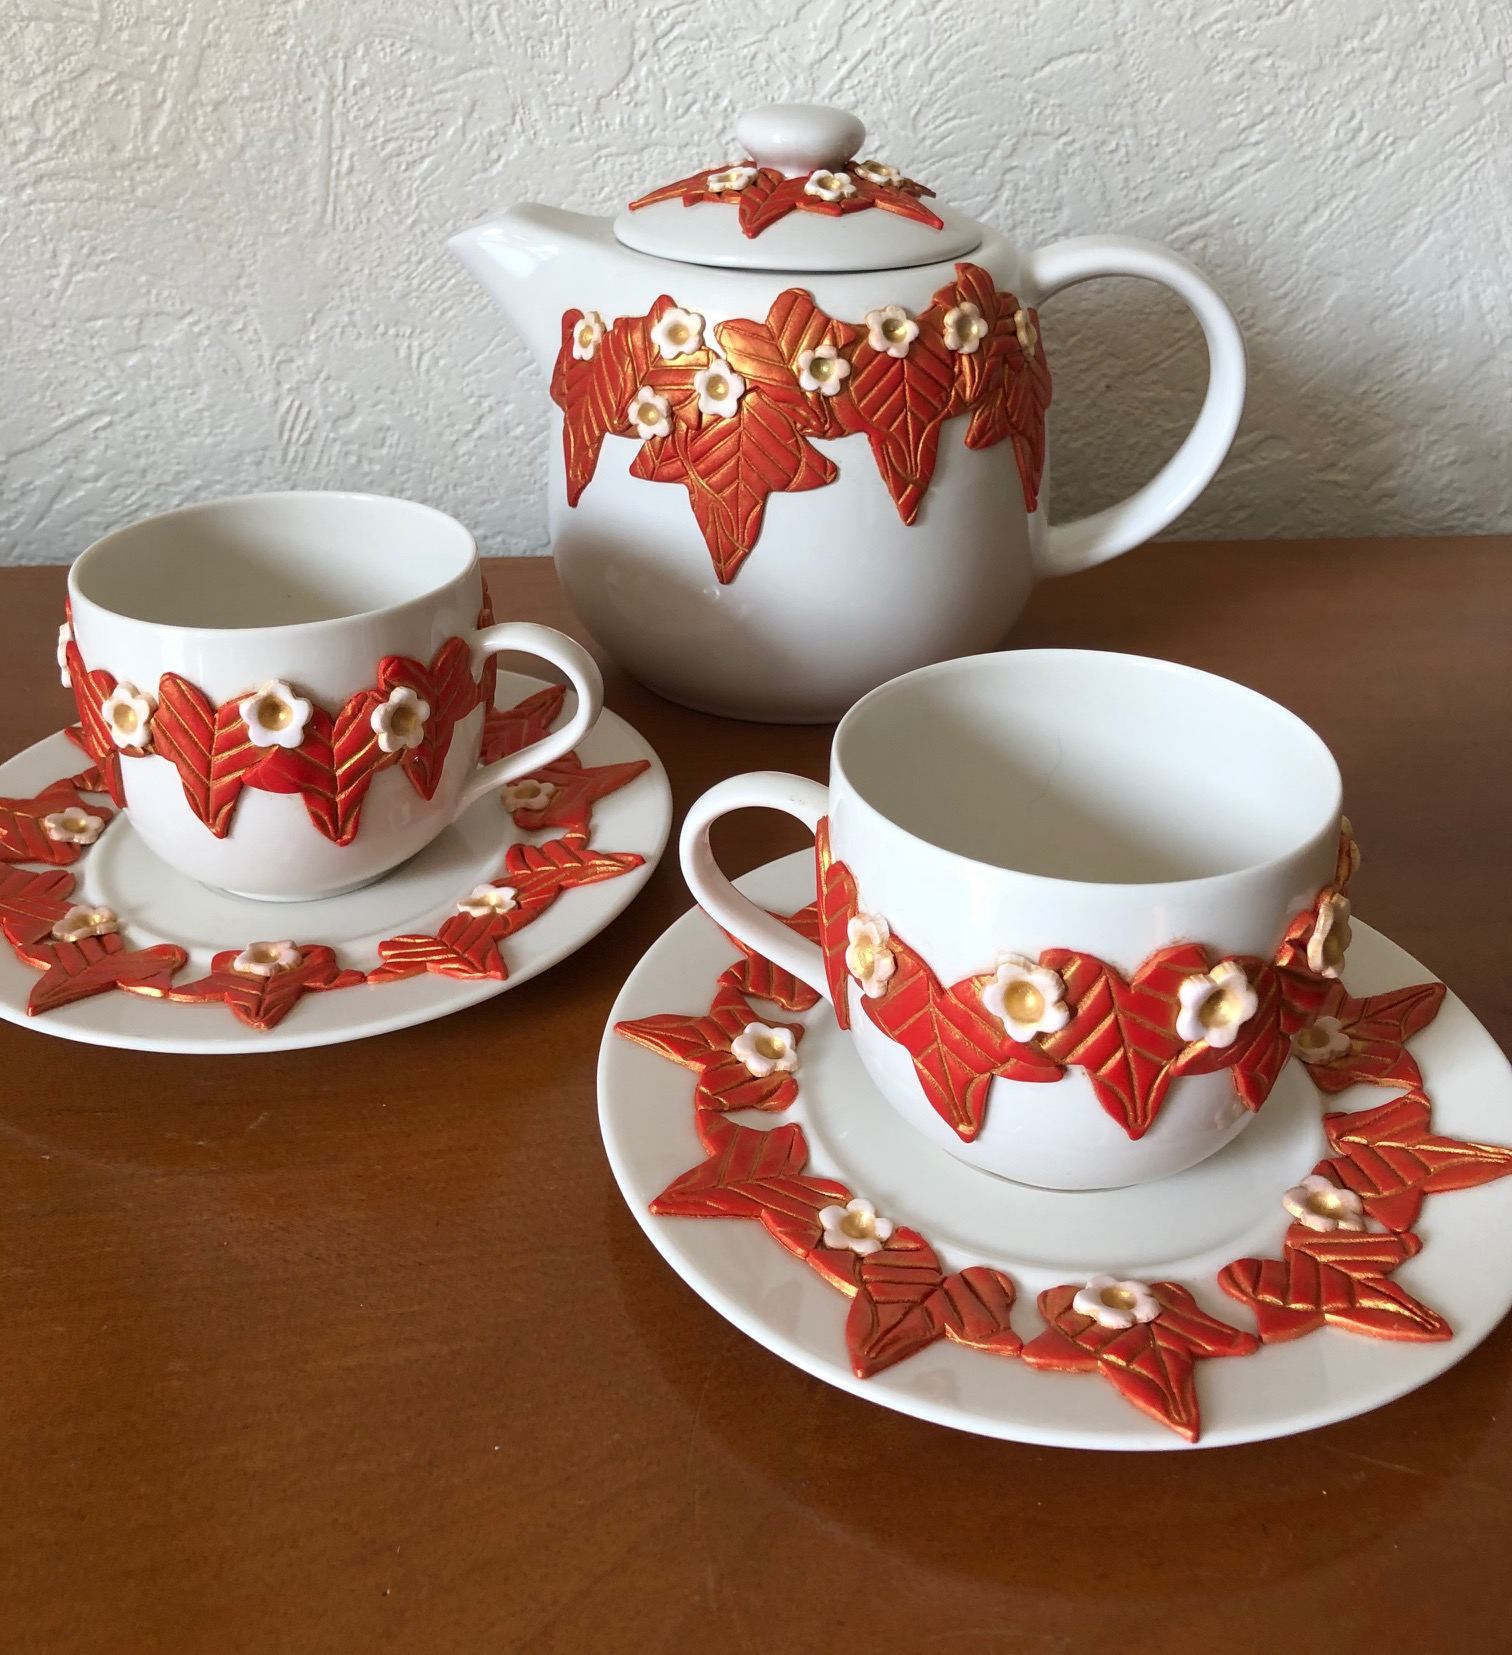 Yvi tea set (£75)